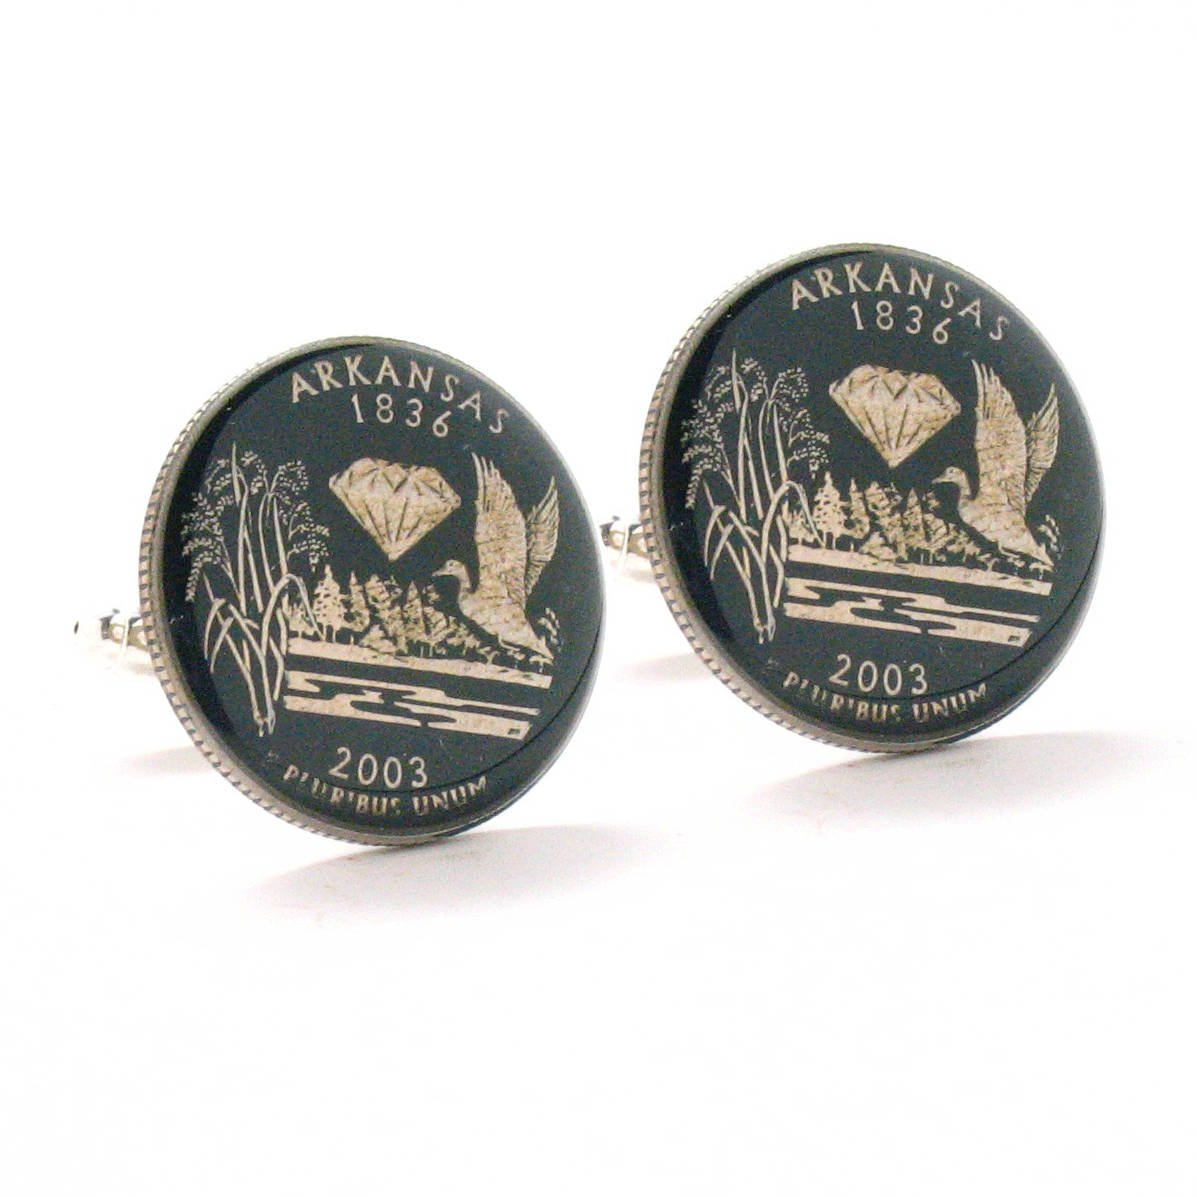 Arkansas Quarter Cufflinks Suit Flag State Coin Jewelry USA US United States Little Rock Police